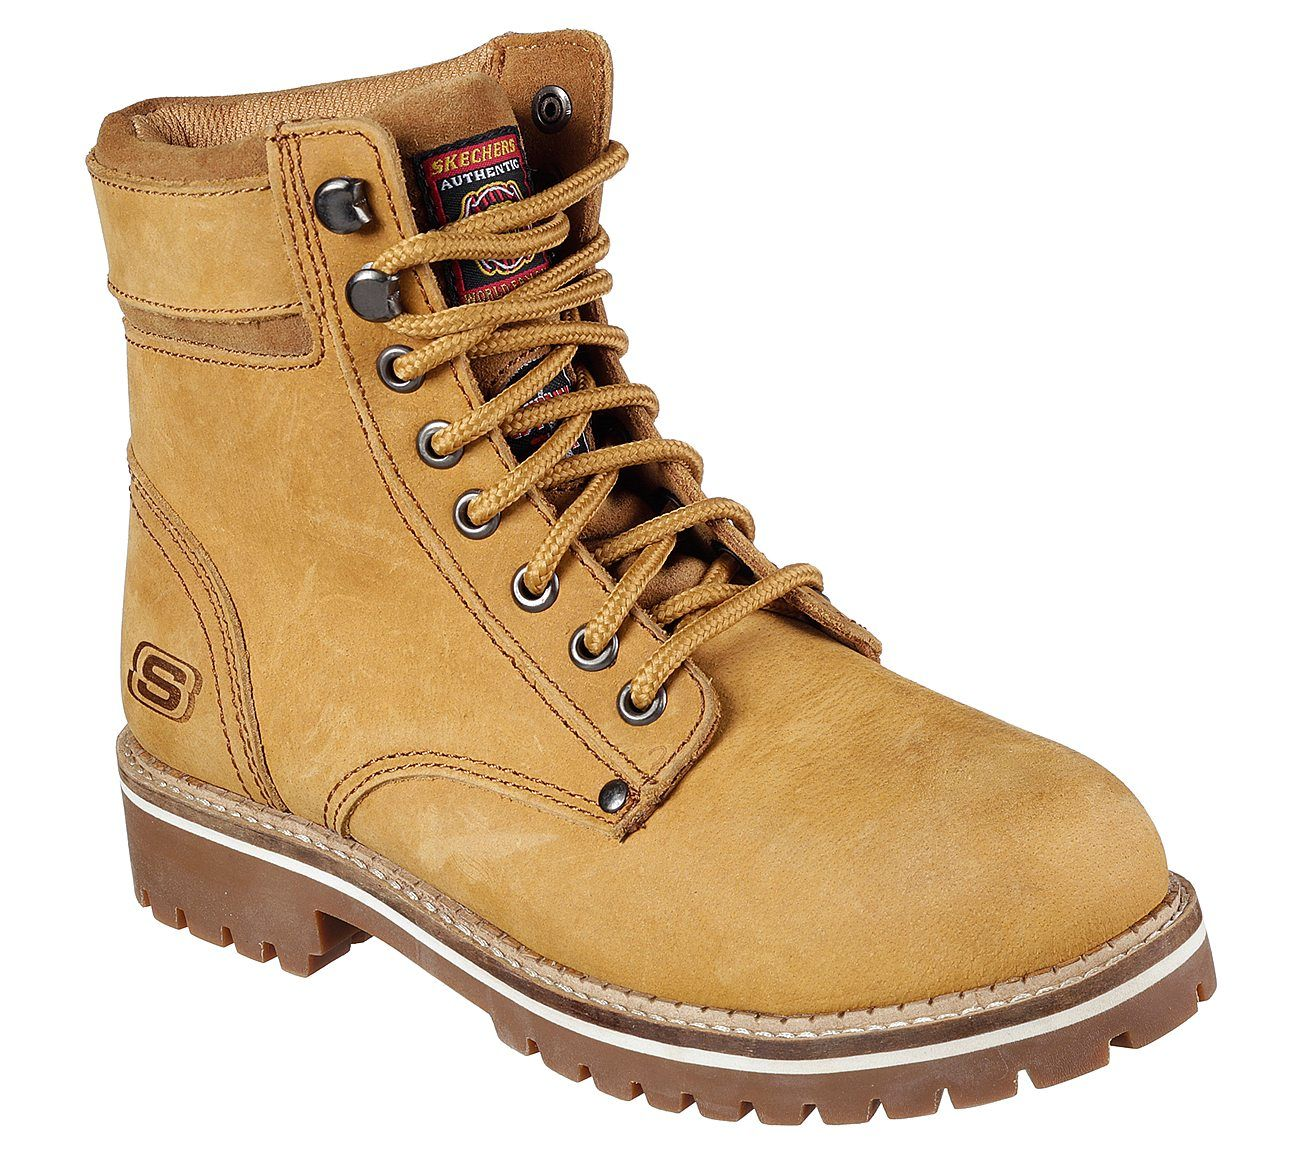 Skechers Womens Brooten Steel Toe Boot